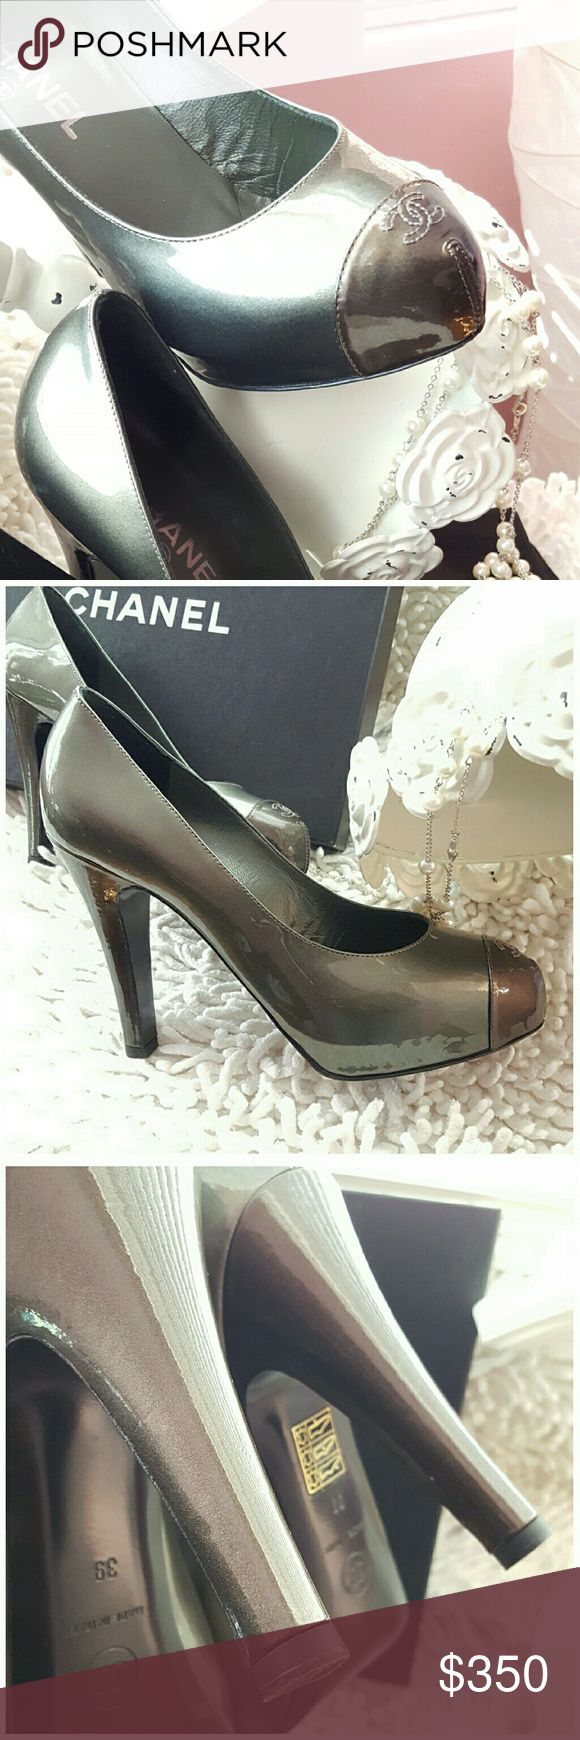 """New Arrival CHANEL PRICE FIRM GORGEOUS VERSATILE METALLIC PATENT LEATHER PUMPS ROUND TOP PUMPS BRONZE CAP-TOE WITH SIGNATURE 'CC' STITCHING ACCENTS AND COVERED HEELS. INCLUDES BOX & DUST COVER. LIGHT WEAR ON SOLES SMALL SCUFFS ON HEELS NOT VISIBLE WHEN WEARING.. HEEL HEIGHT 4.25"""" WEARS LIKE A 31/2"""" HEEL COLOR IS METALLIC BRONZE AND DEEP GUNMETAL CHANEL 1/2 Size SMALLER 39=US 8 CHANEL Shoes"""